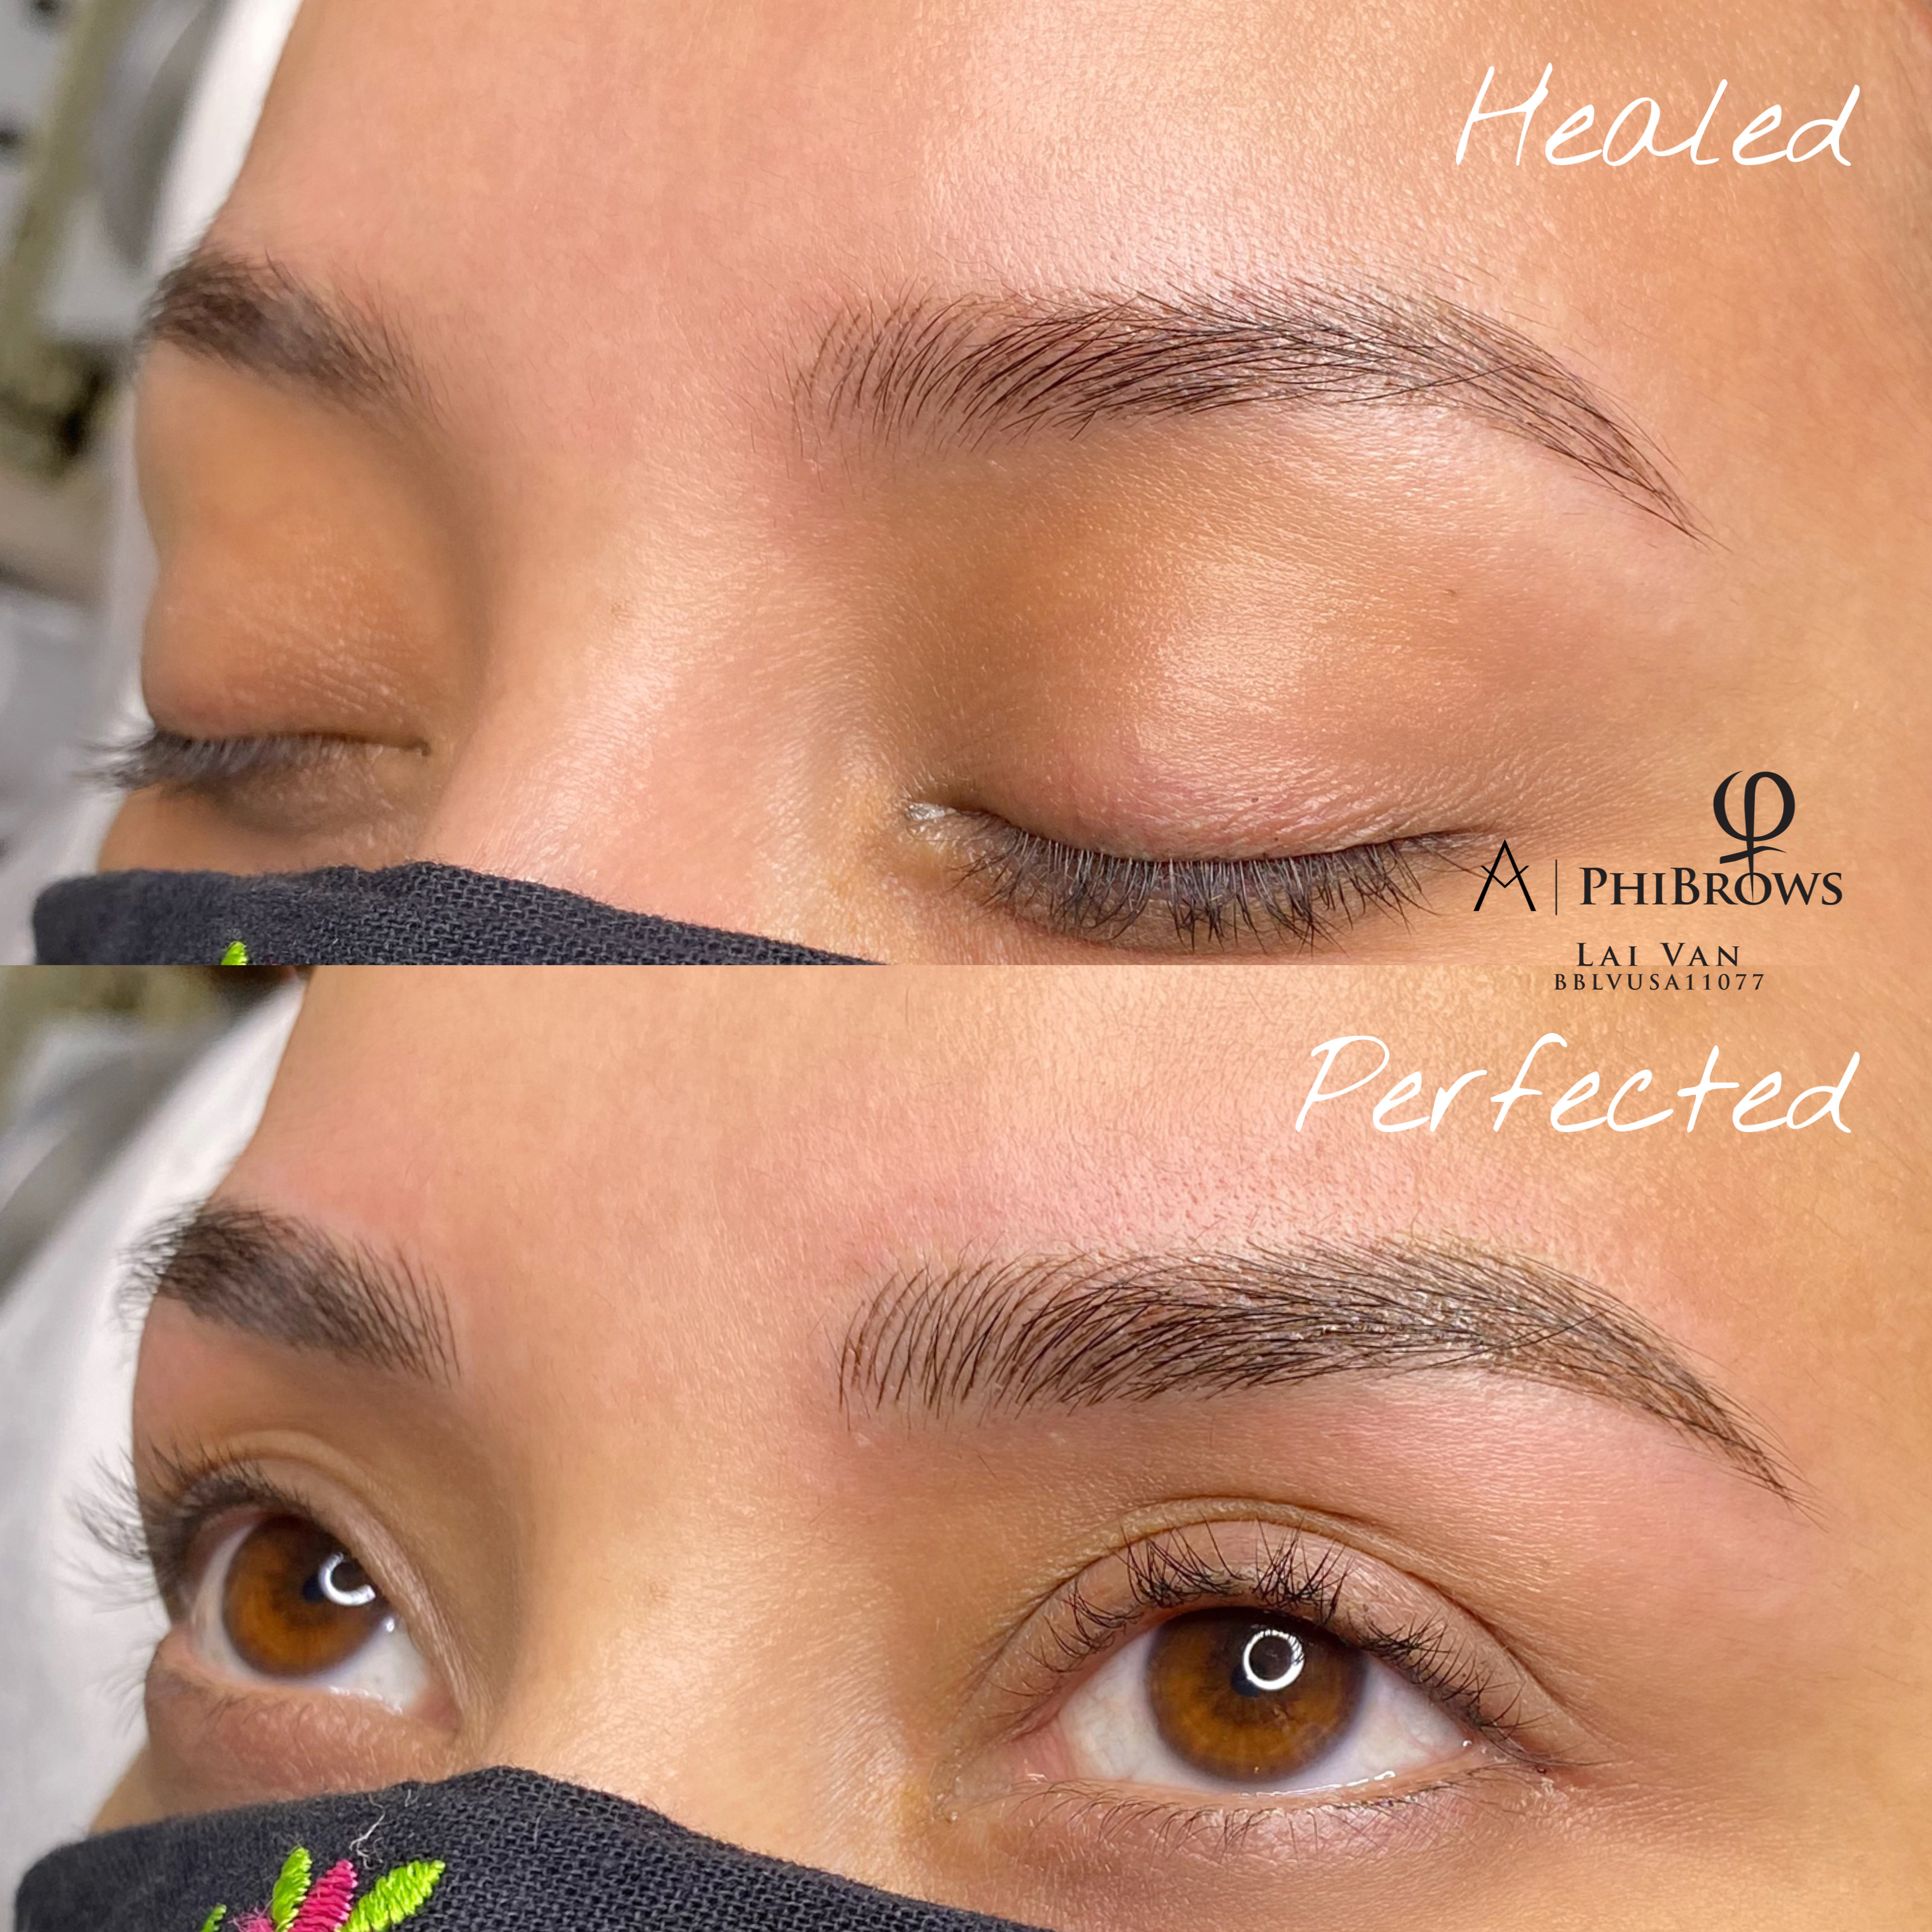 Healed Microblading & Perfected